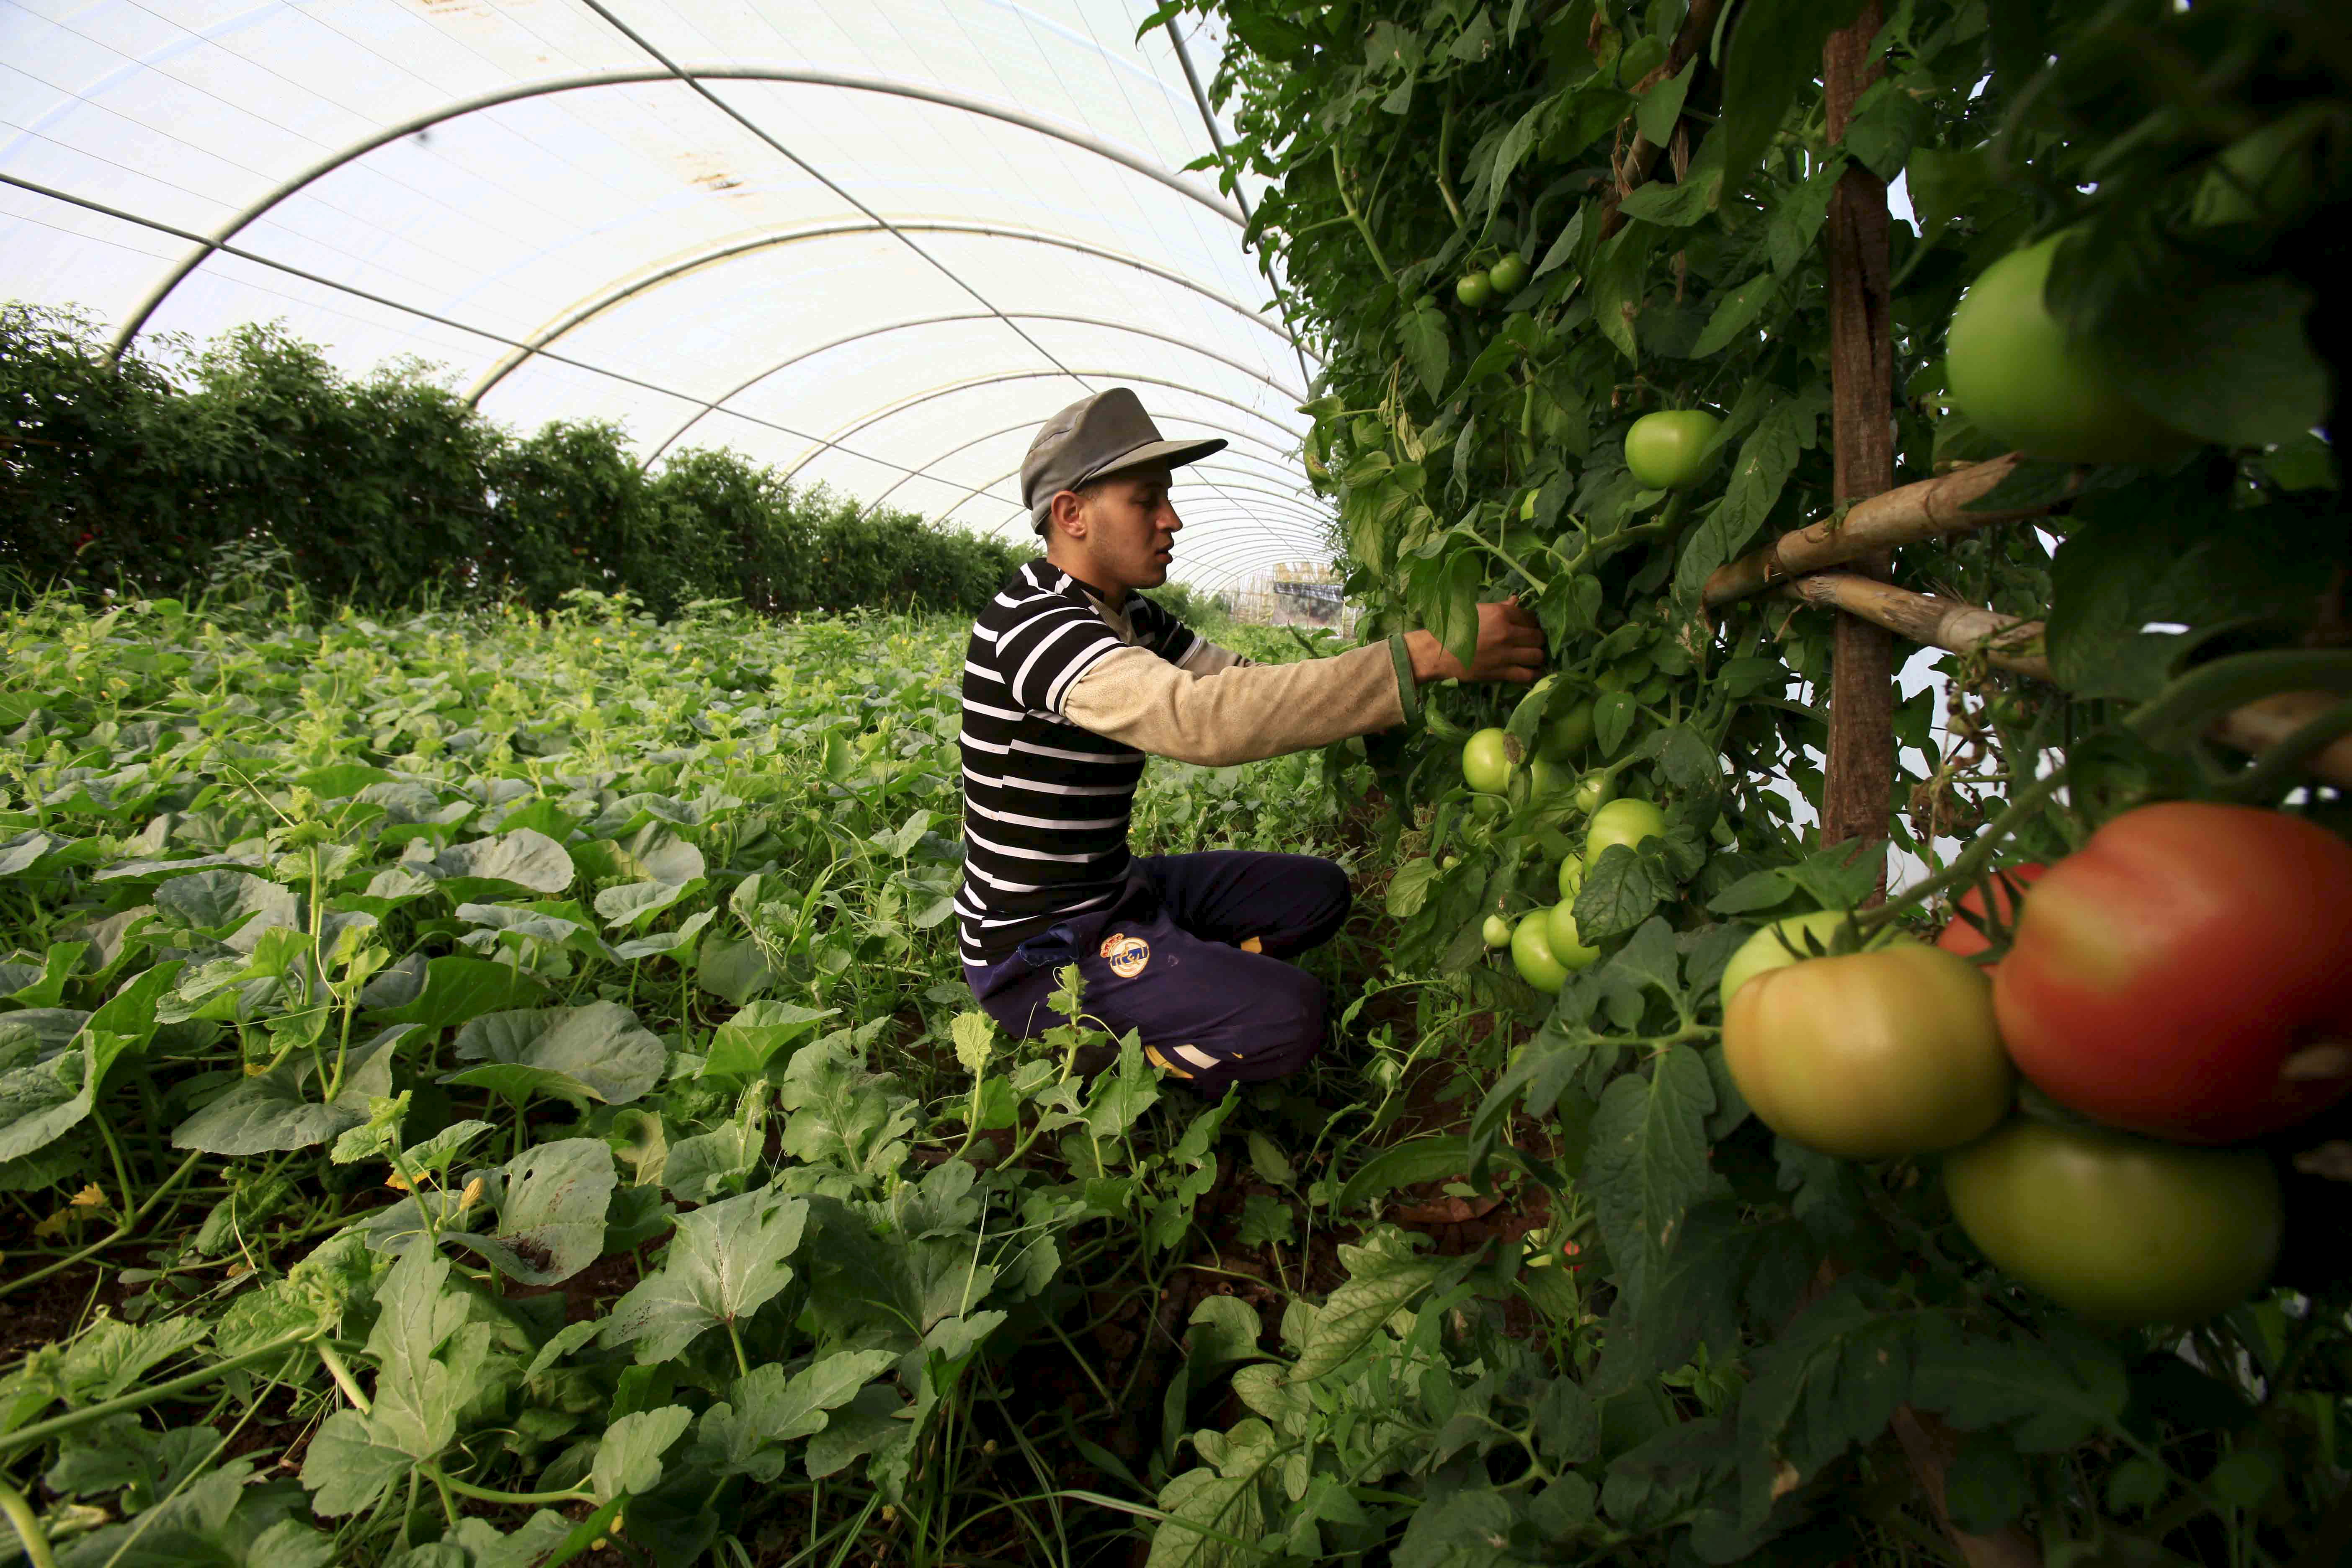 A farmer checks on his crop of tomatos in Tipaza, west of Algiers, Algeria June 3, 2015. Besides falling energy revenues, Algeria also has a growing number of mouths to feed, with the population put at 40 million and increasing by an estimated one million a year. Main foodstuffs, including cereals, sugar and milk are subsidised, but there is no such help for some products such as vegetables, which keeps prices high. Official statistics show the state imports on average five million tonnes of wheat and barley a year, but that figure appears to be climbing. It hit some 7.4 million in 2014. Algeria last year took its first steps towards opening up the farming sector to foreign investors, inviting bids for 16 state-owned farms focused on grains, vegetables, fruit trees and cattle breeding. Picture taken June 3, 2015.  To match story ALGERIA-AGRICULTURE/      REUTERS/Ramzi Boudina - GF10000120888